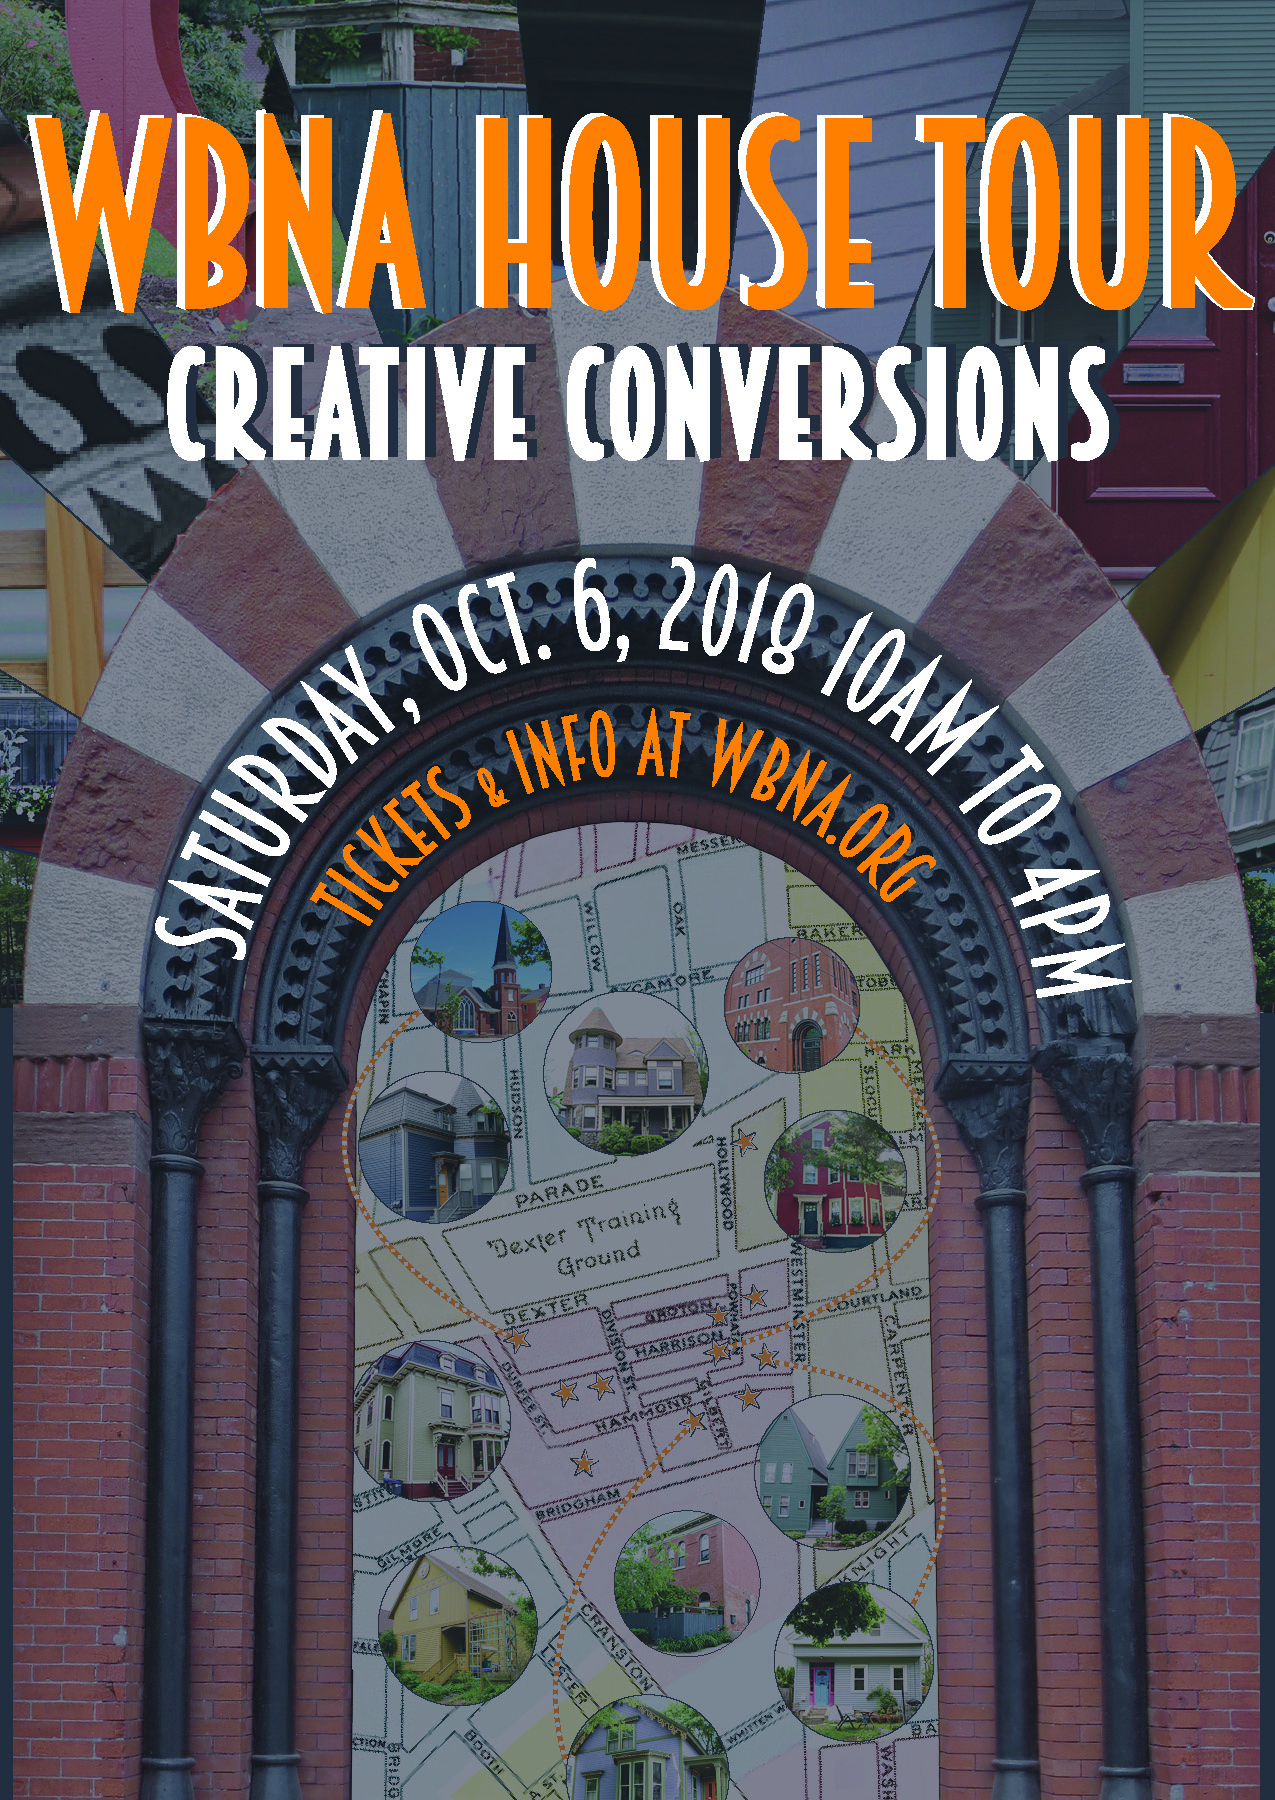 Take the tour and explore the West Side at your own pace - With a map and select locations to stop, visitors and long-time Rhode Island residents can take the WBNA House Tour to see private homes, artist studios, and discover secret urban gardens that green the city-scape.